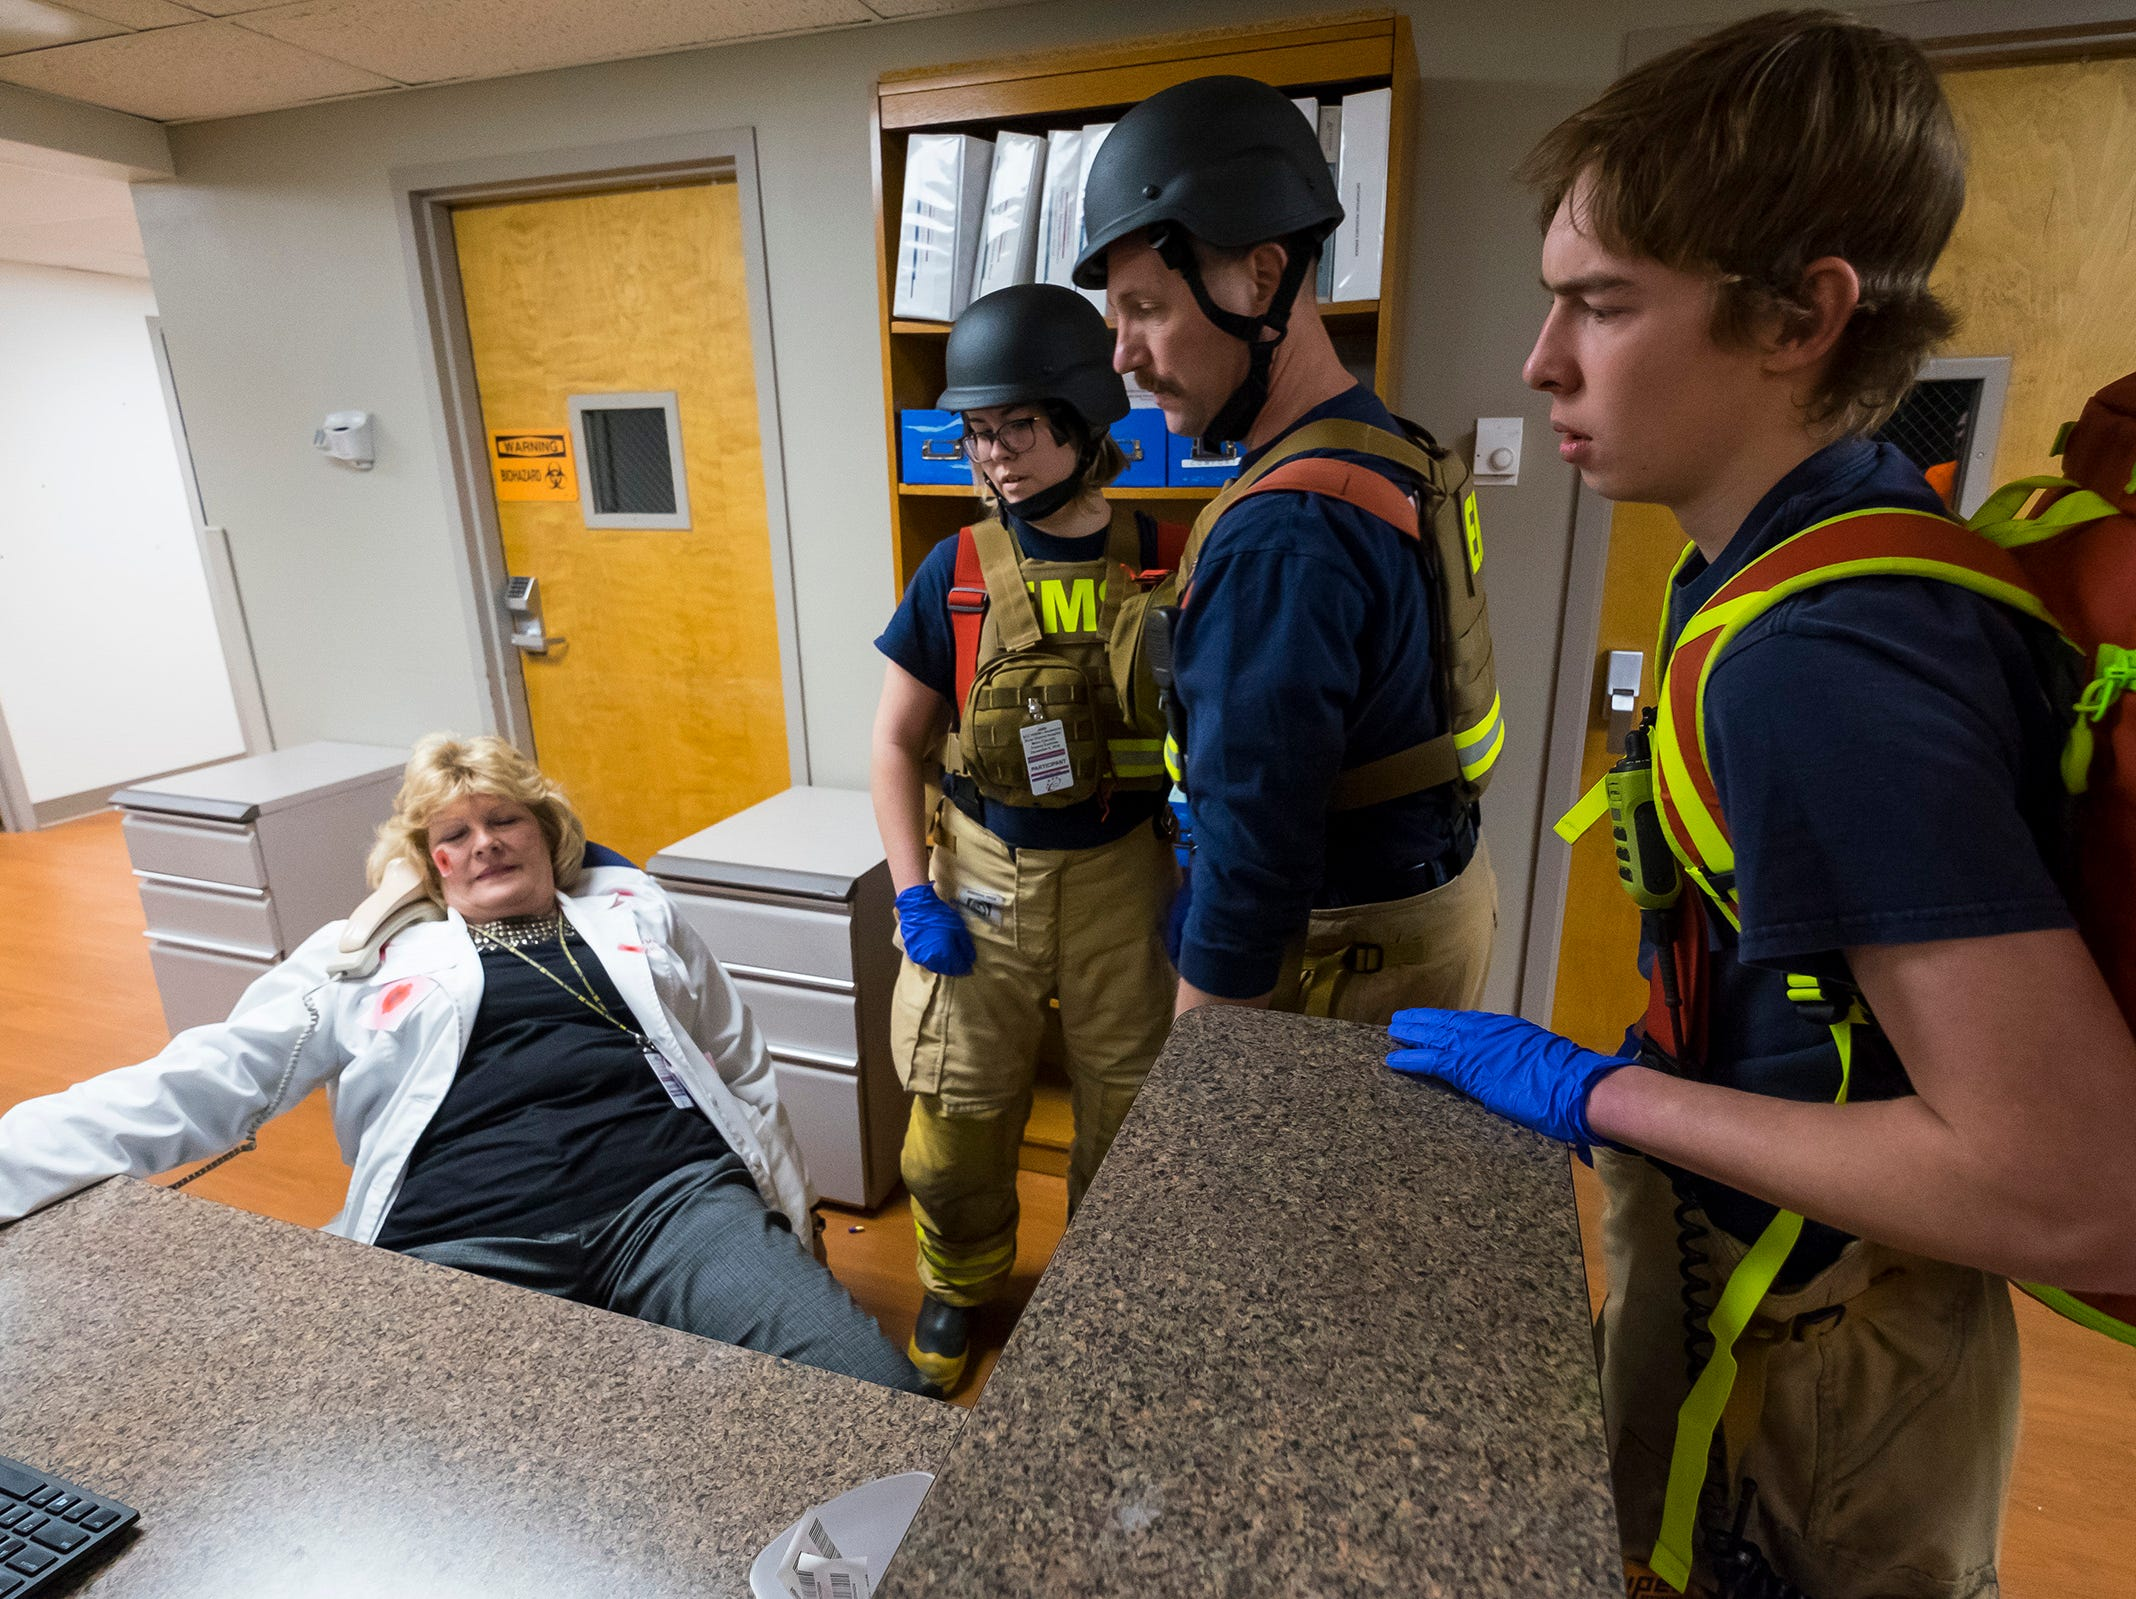 Responders check on a deceased victim during an active shooter training drill Thursday, Dec. 6, 2018 at Ascension River District Hospital in East China.